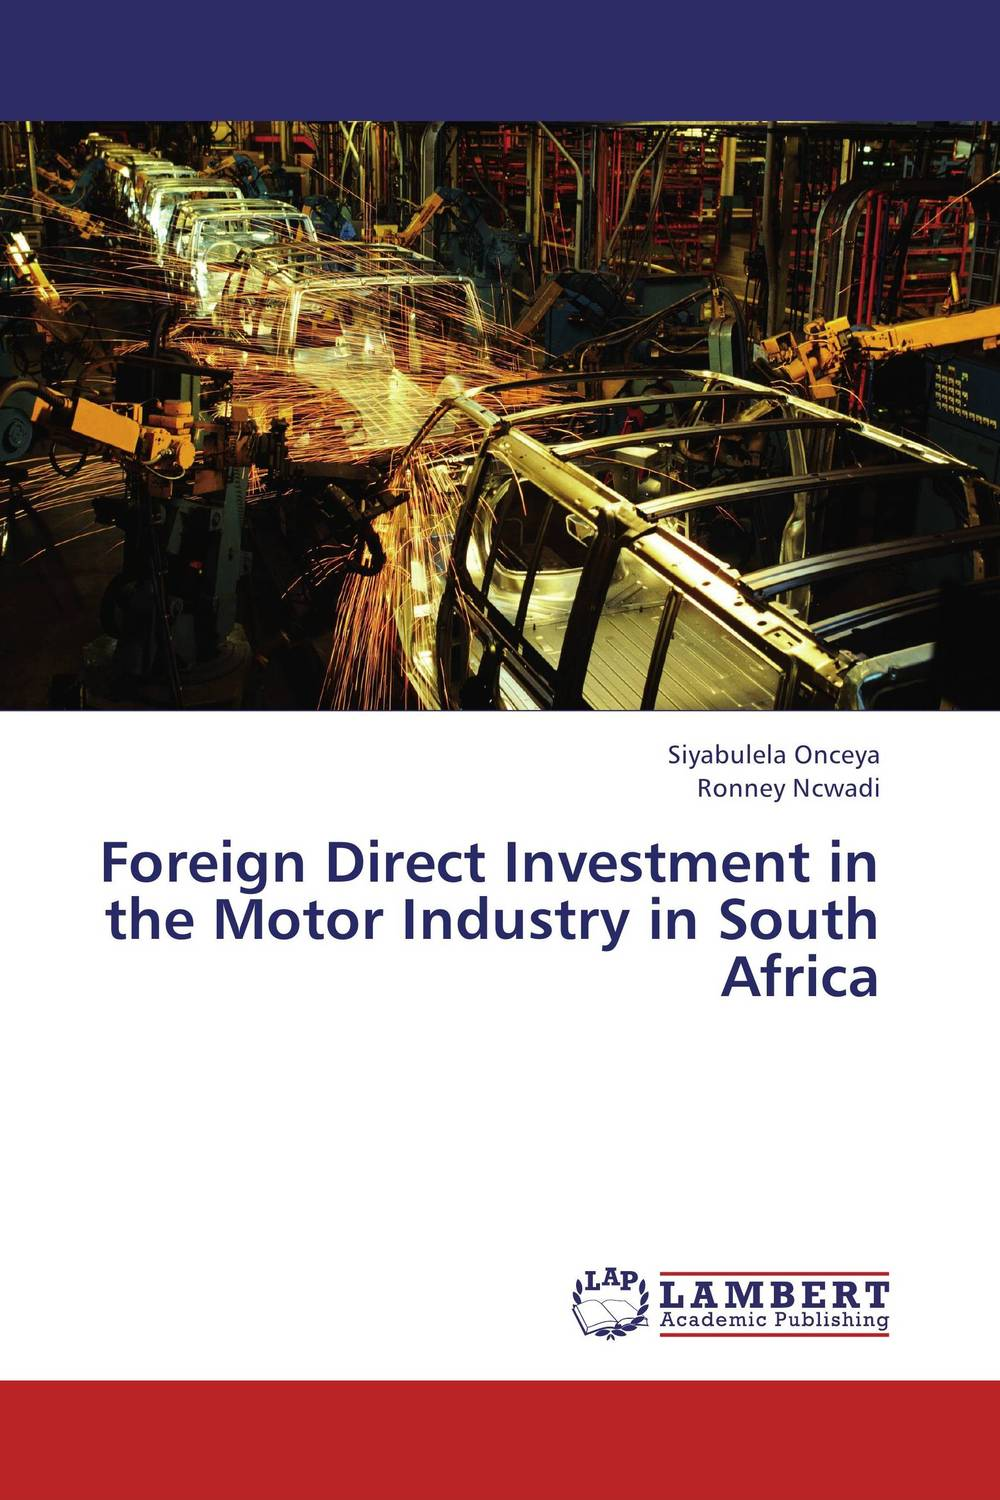 Foreign Direct Investment in the Motor Industry in South Africa relationship of foreign direct investment and stock markets